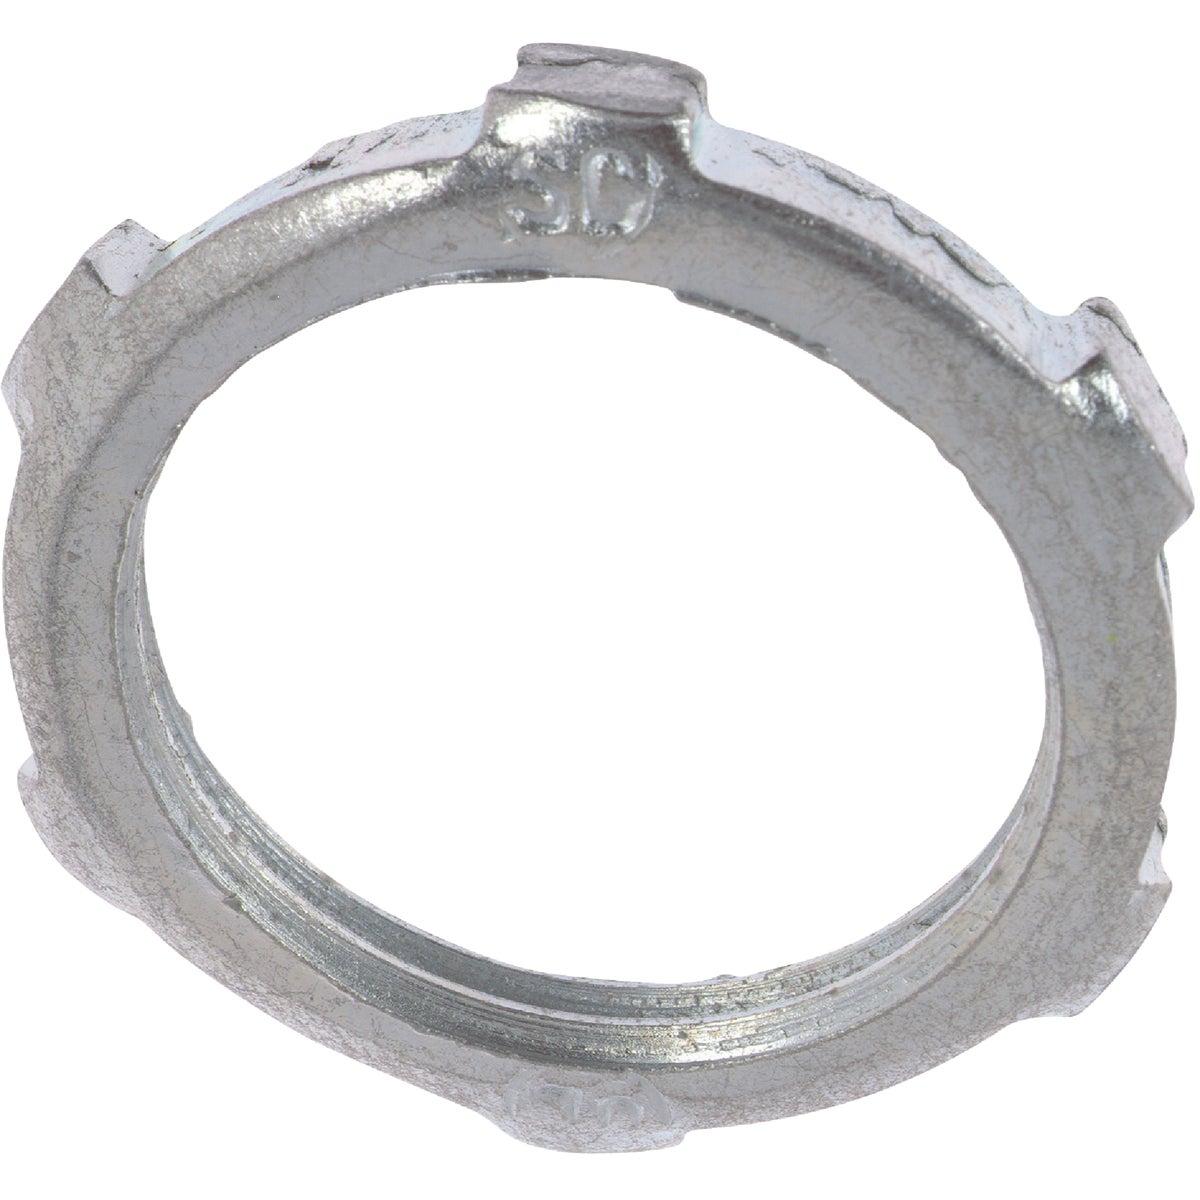 "100PC 3/4"" LOCKNUT - LN102 by Thomas & Betts"